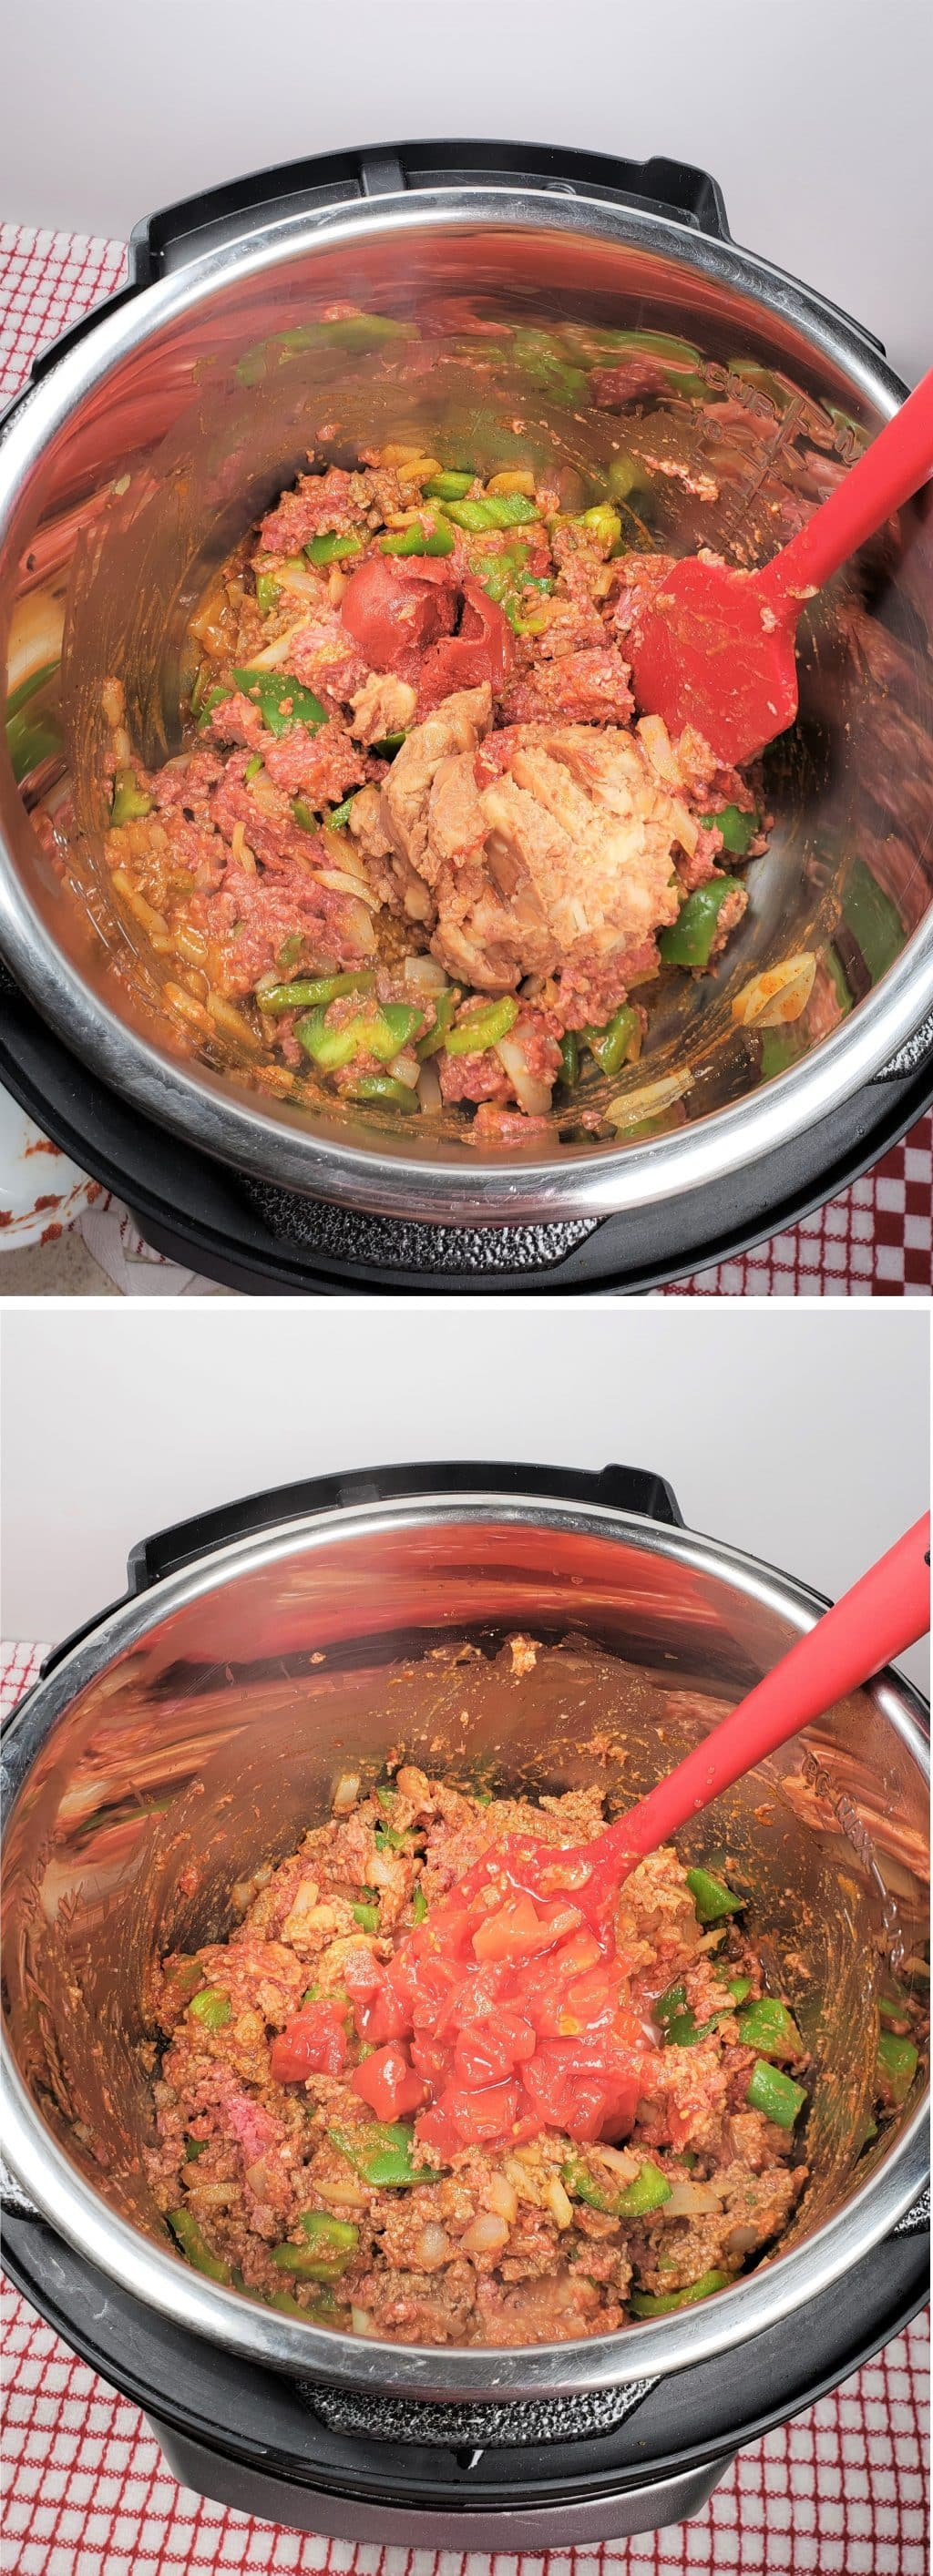 Mix in Frijoles (Refried Beans)